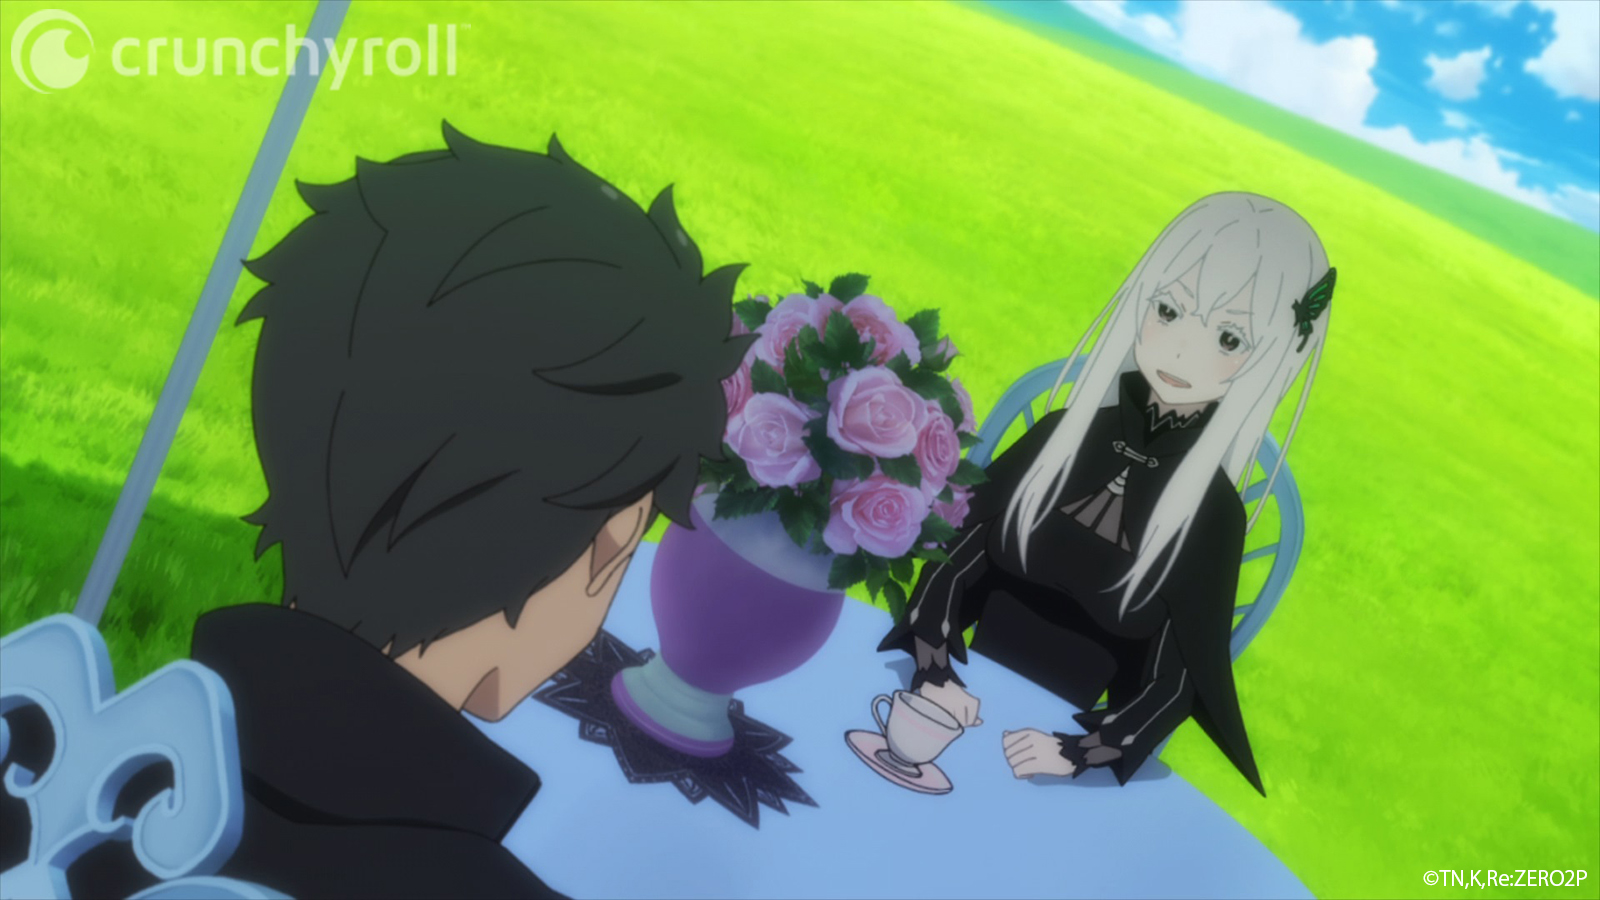 Echidna, the Witch of Greed, prepares a lovely cup of tea for Subaru in a scene from the Re:ZERO -Starting Life in Another World- TV anime.